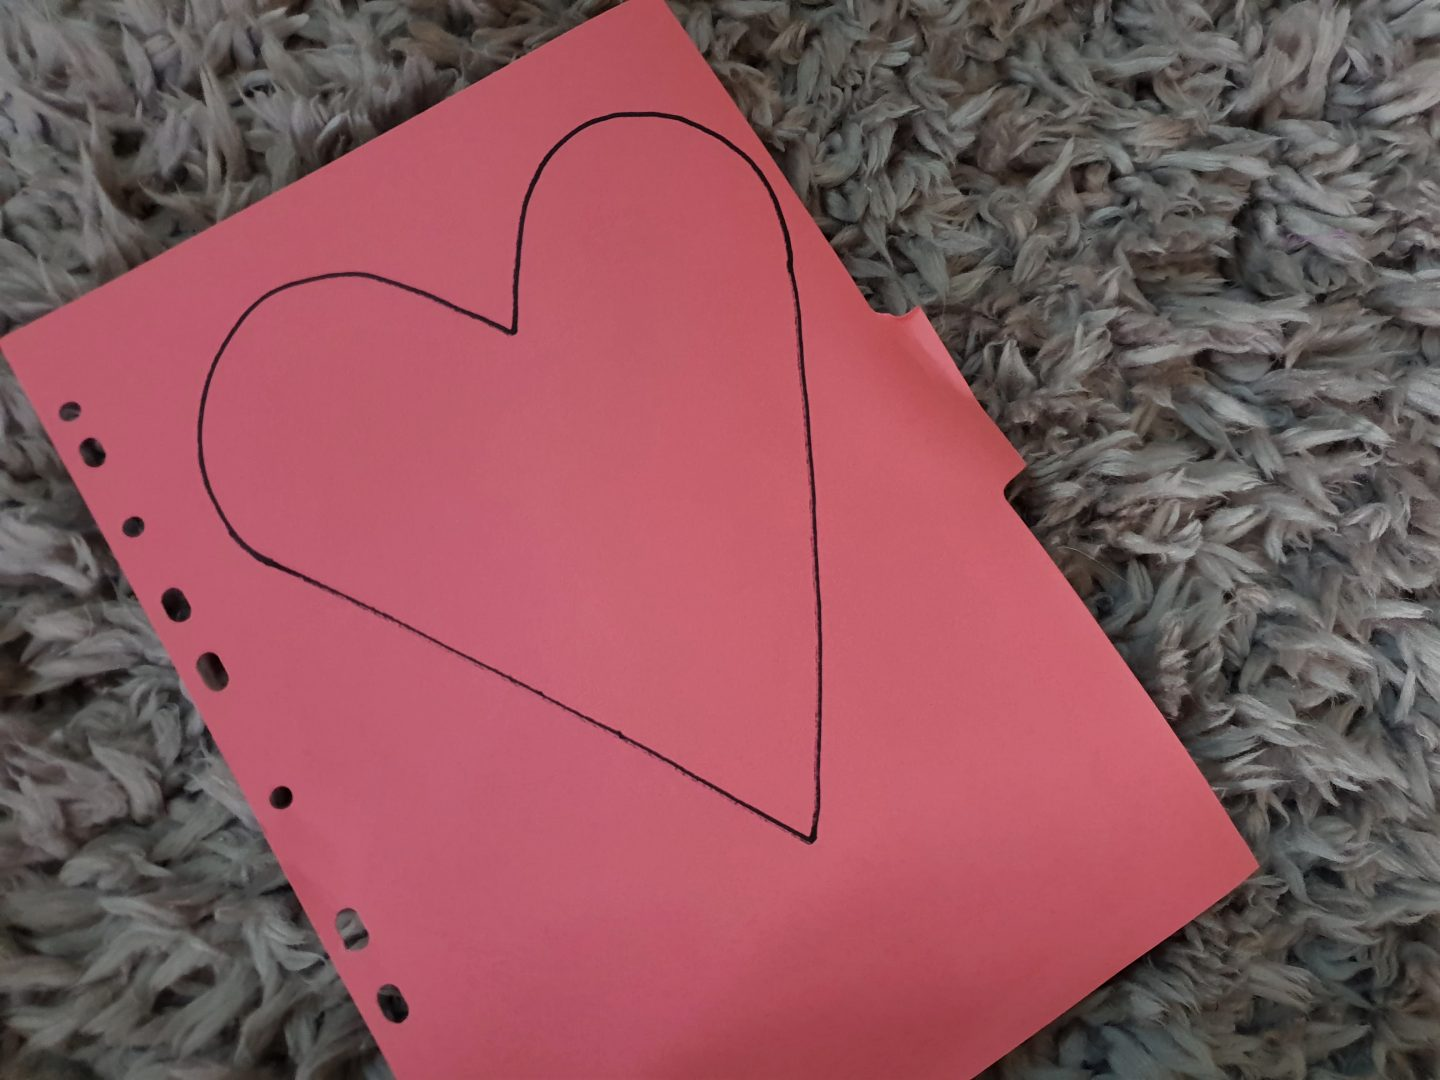 Heart shape drawn with sharpie on recycled pink card